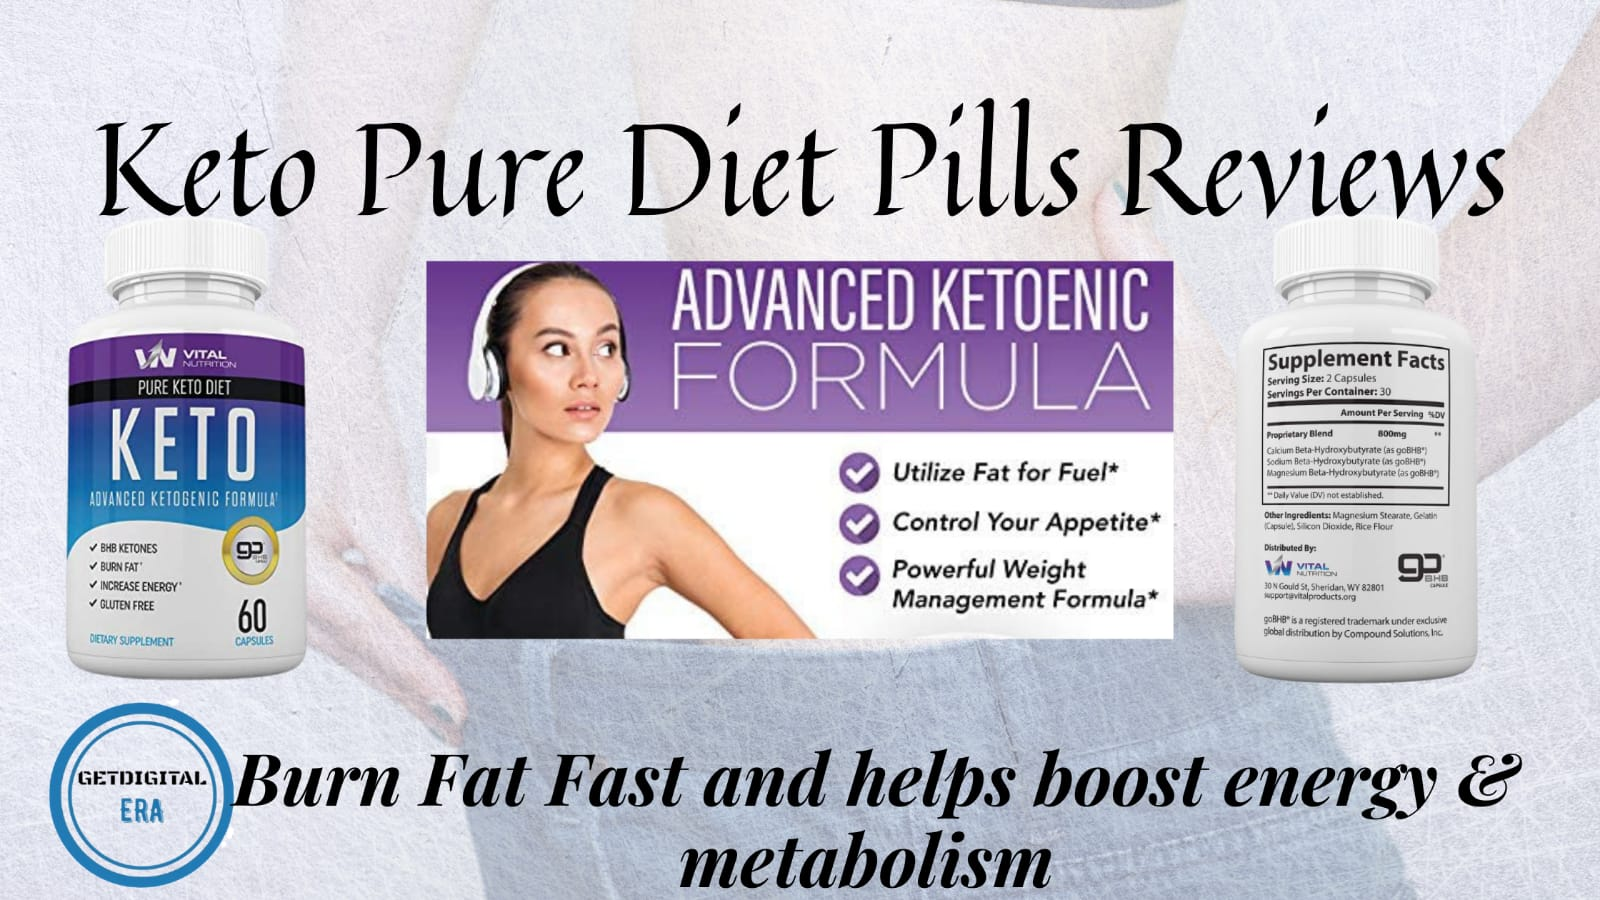 Keto Pure Diet Pills Reviews